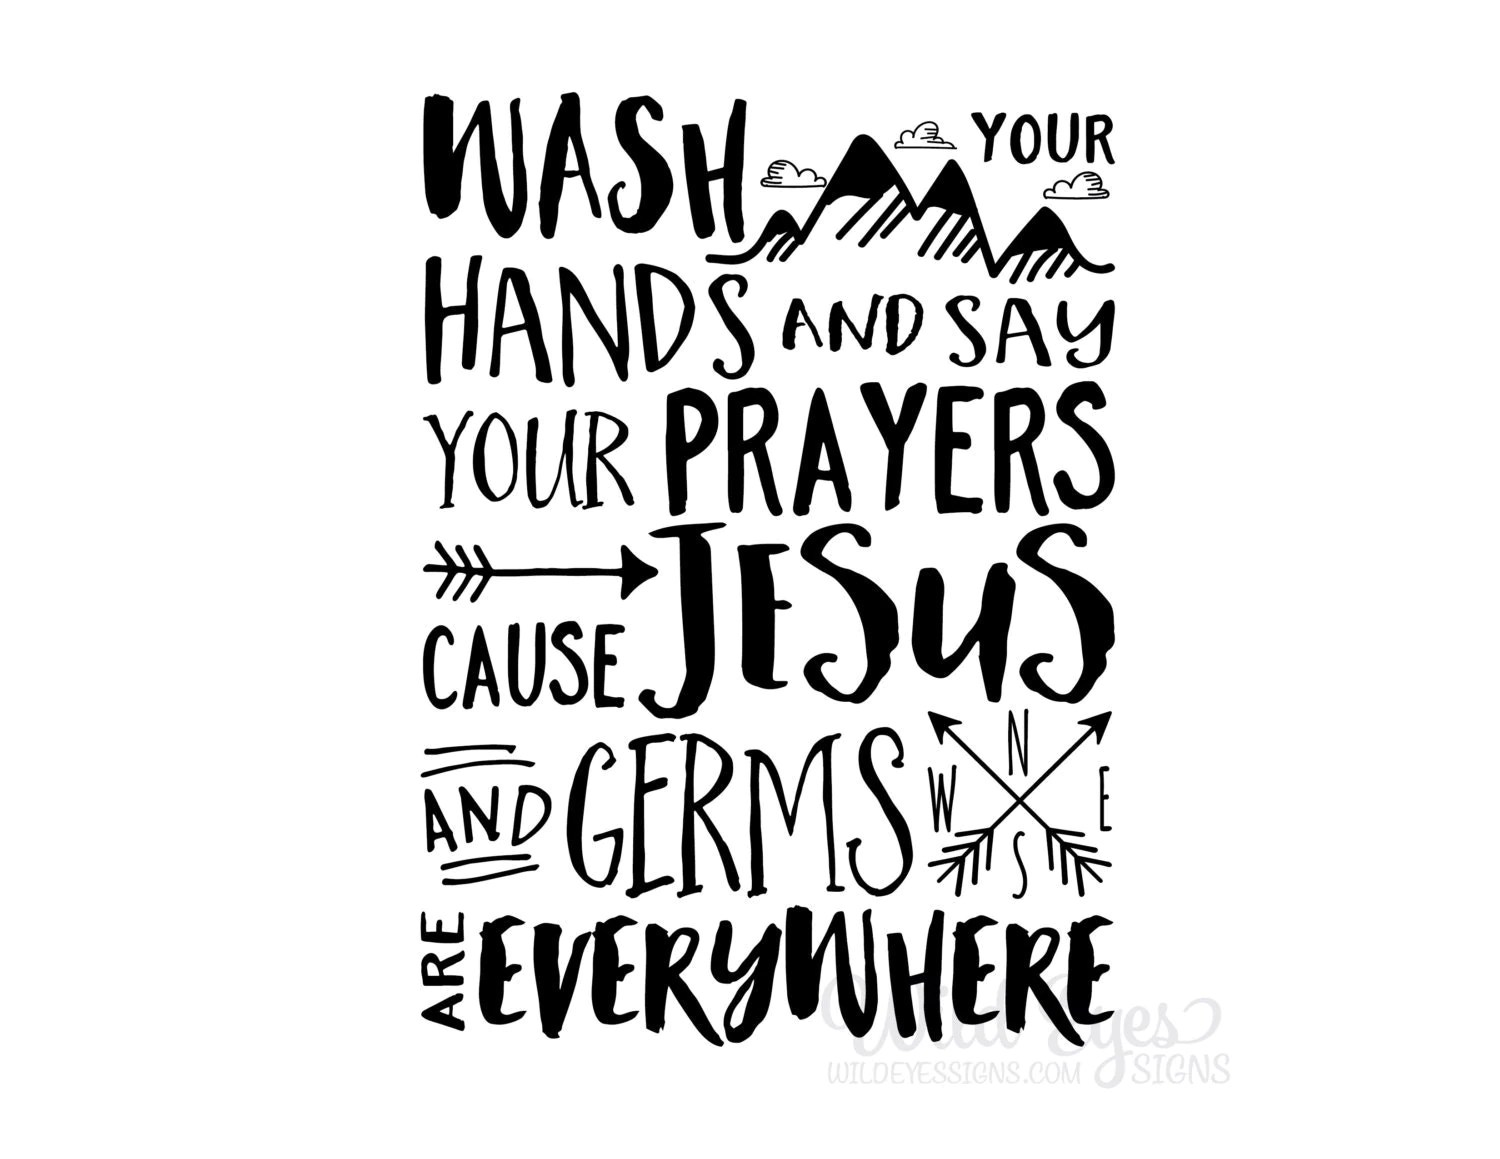 Wash your hands and say your prayers cause Jesus and germs are